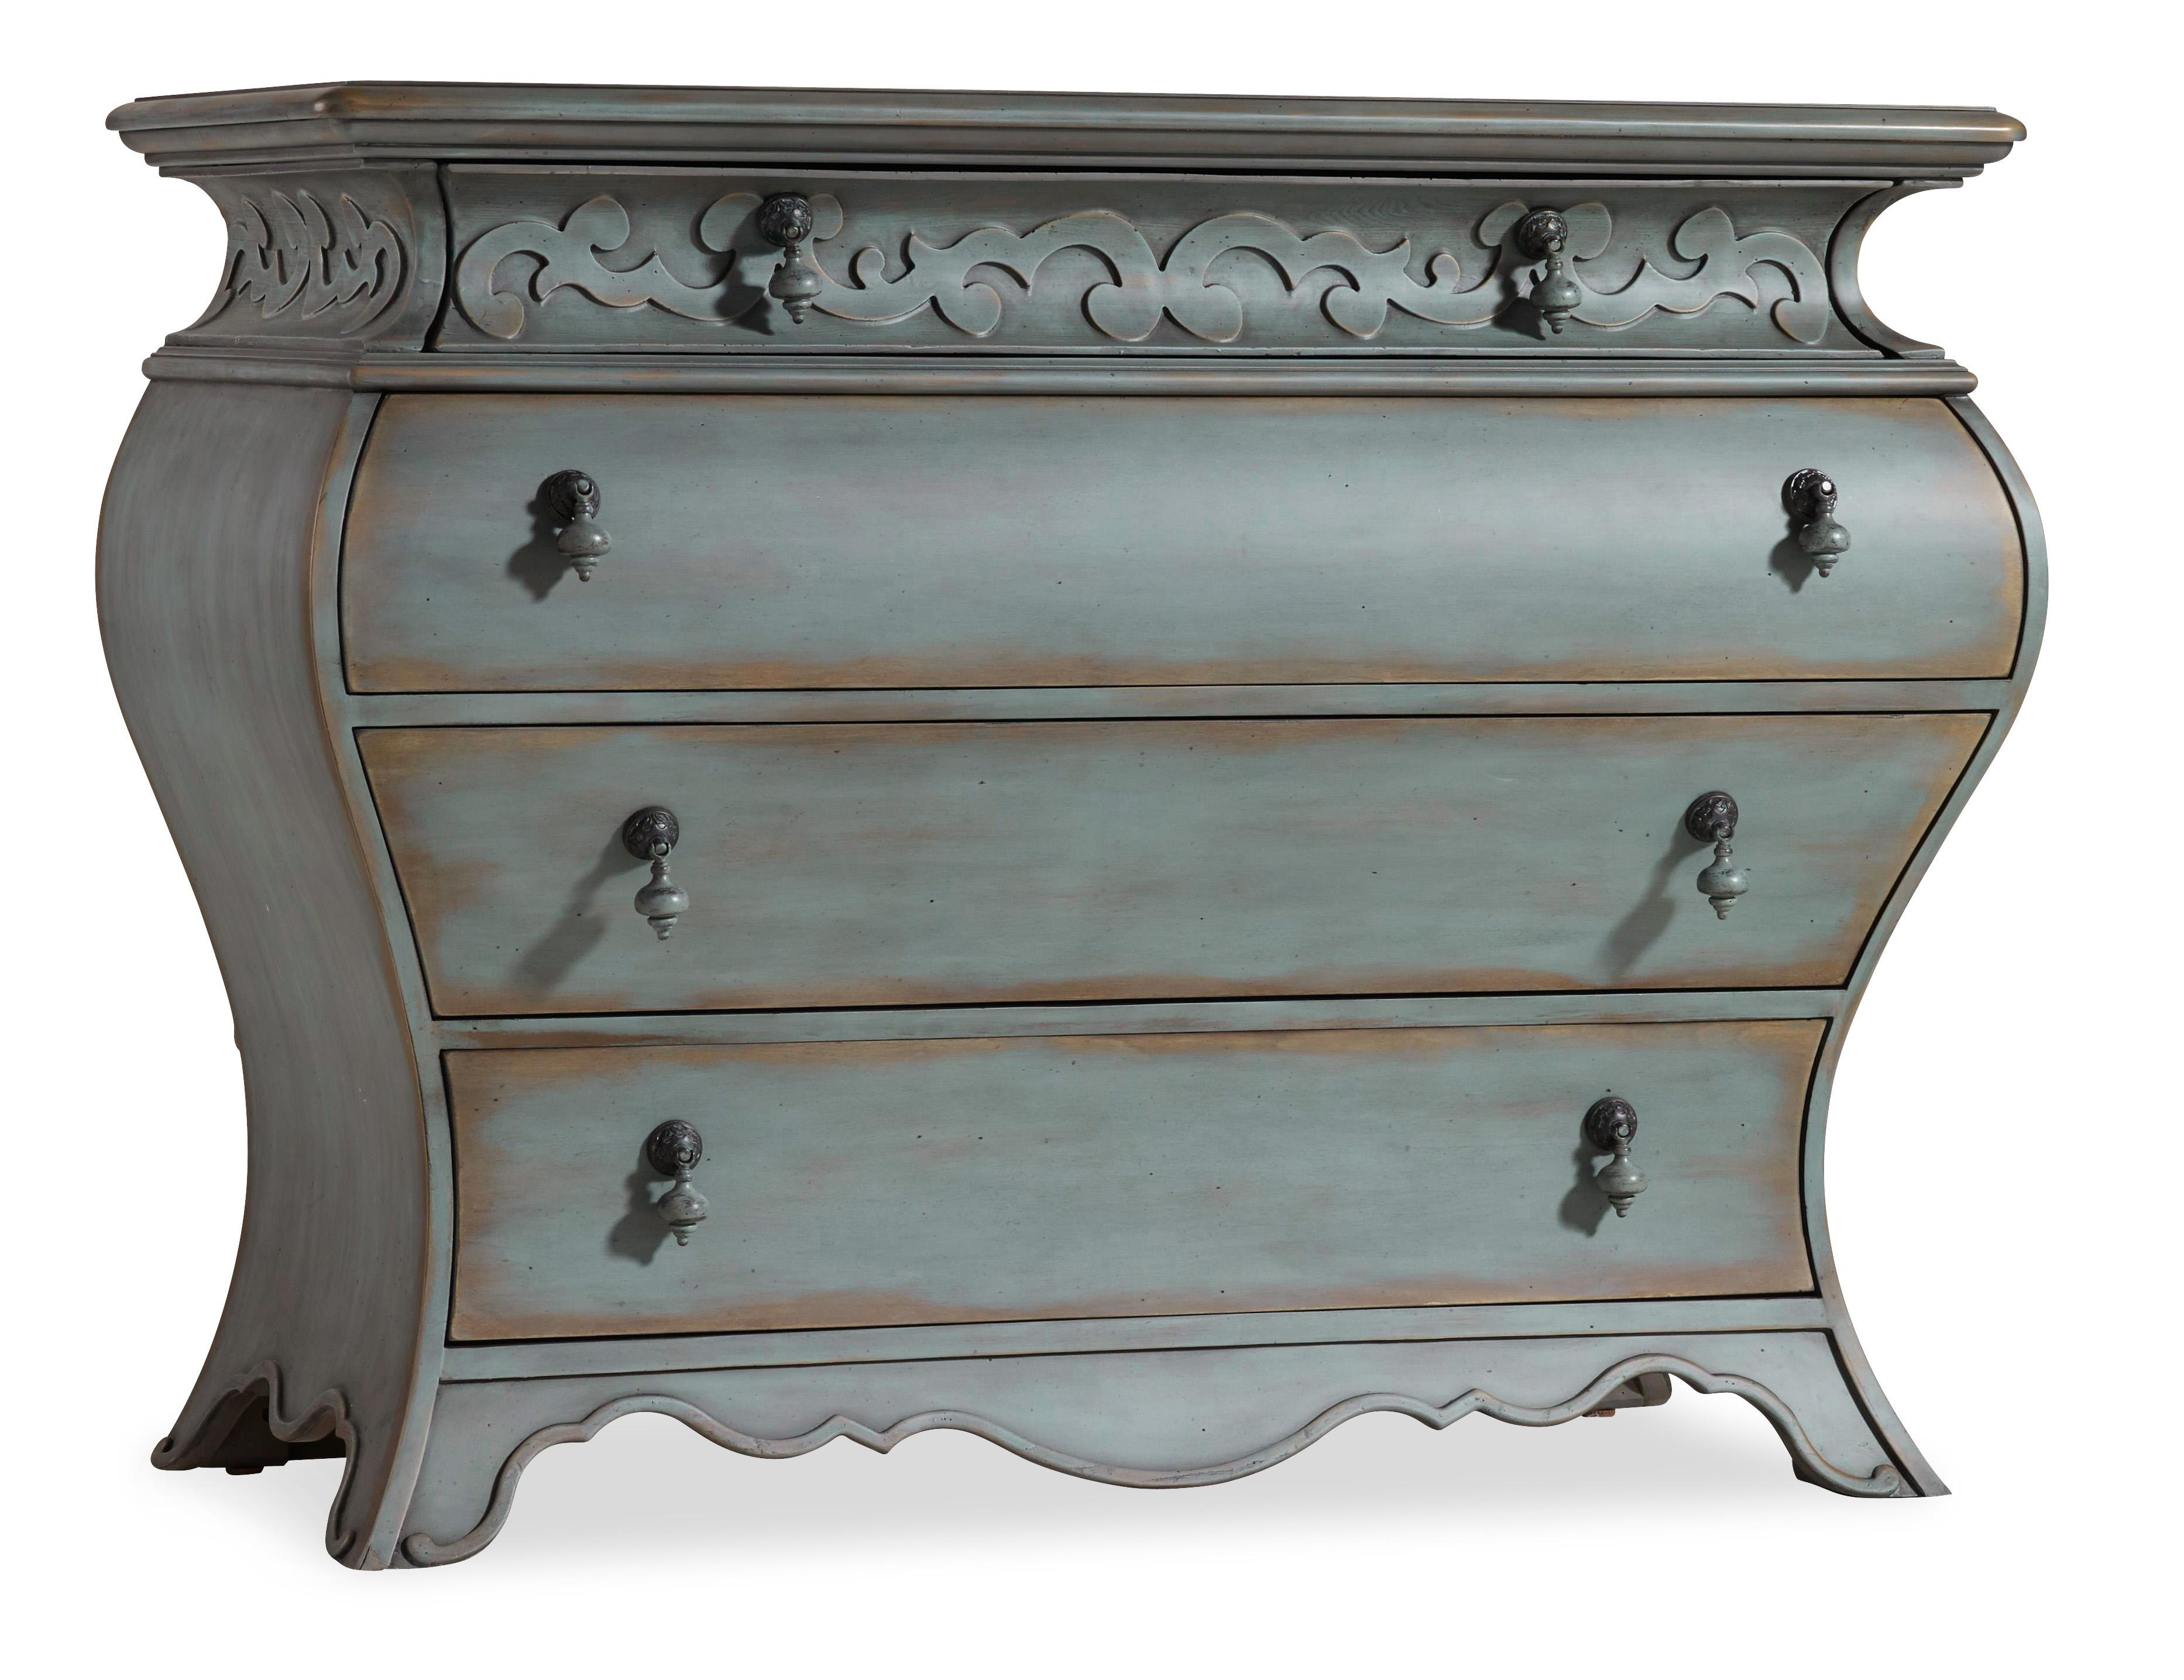 Hooker Furniture 5310 Bombay Accent Chest - Item Number: 5310-85001